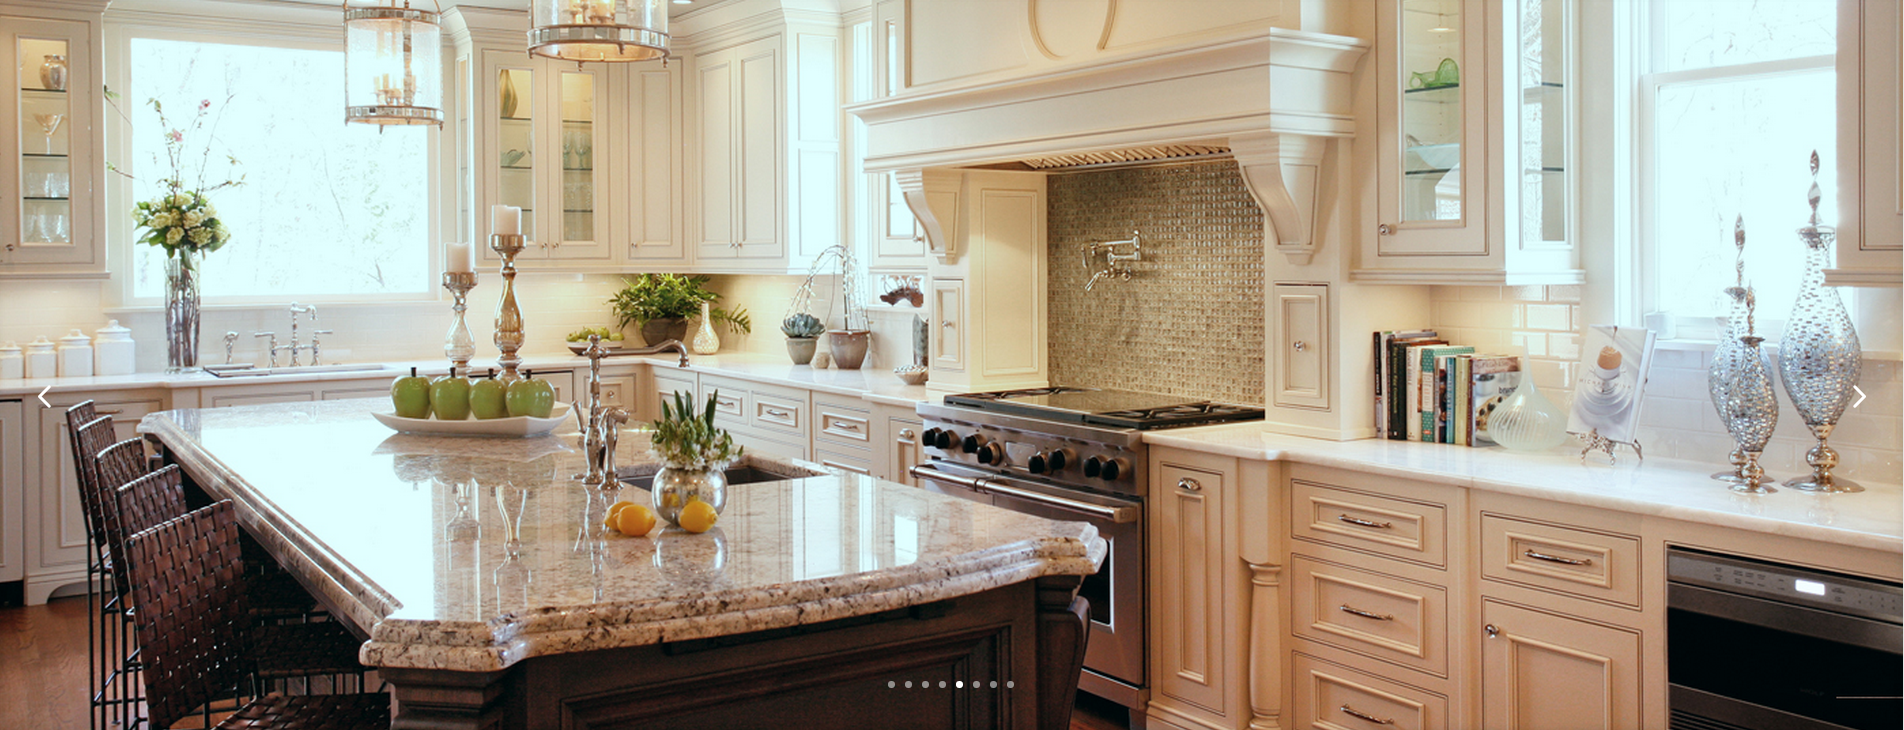 kitchen design blogs 2014 beautiful kitchens beautiful a dbc2014 thank you 546